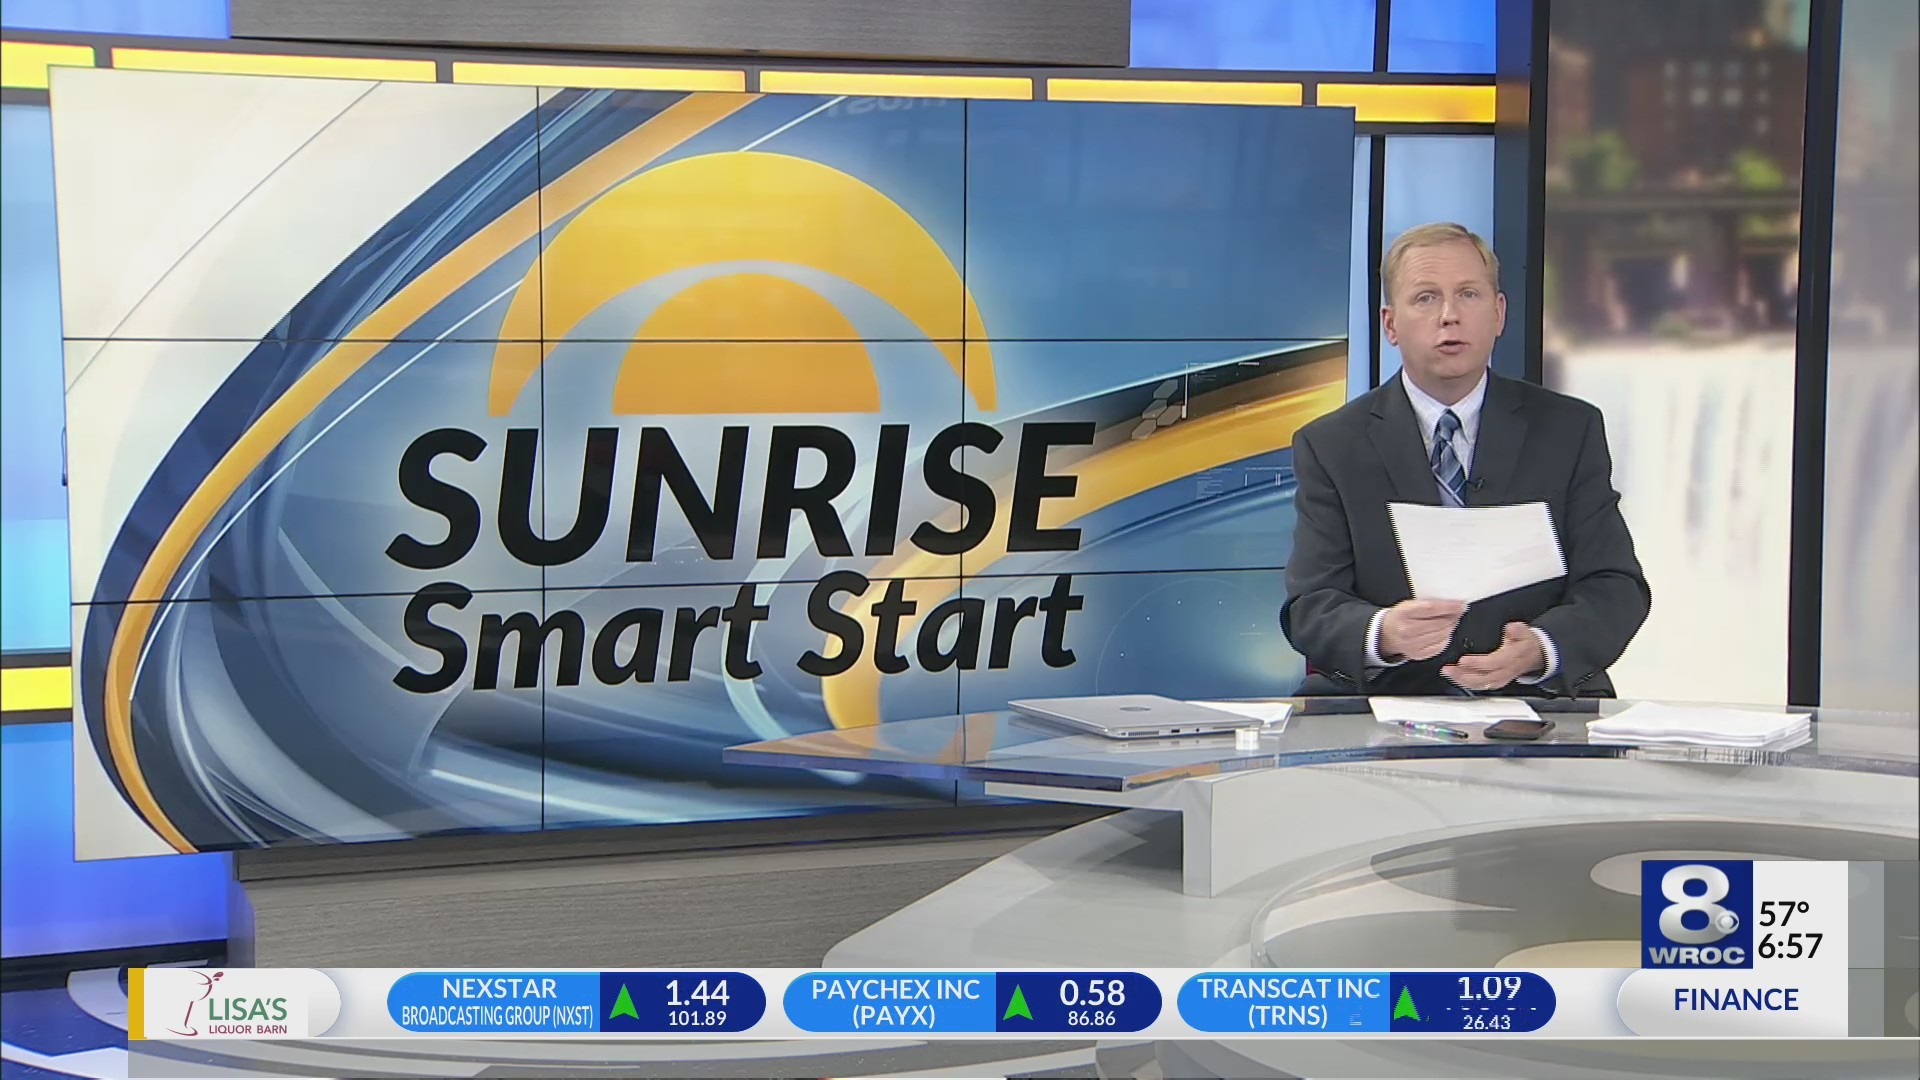 Sunrise Smart Start for June 19, 2019